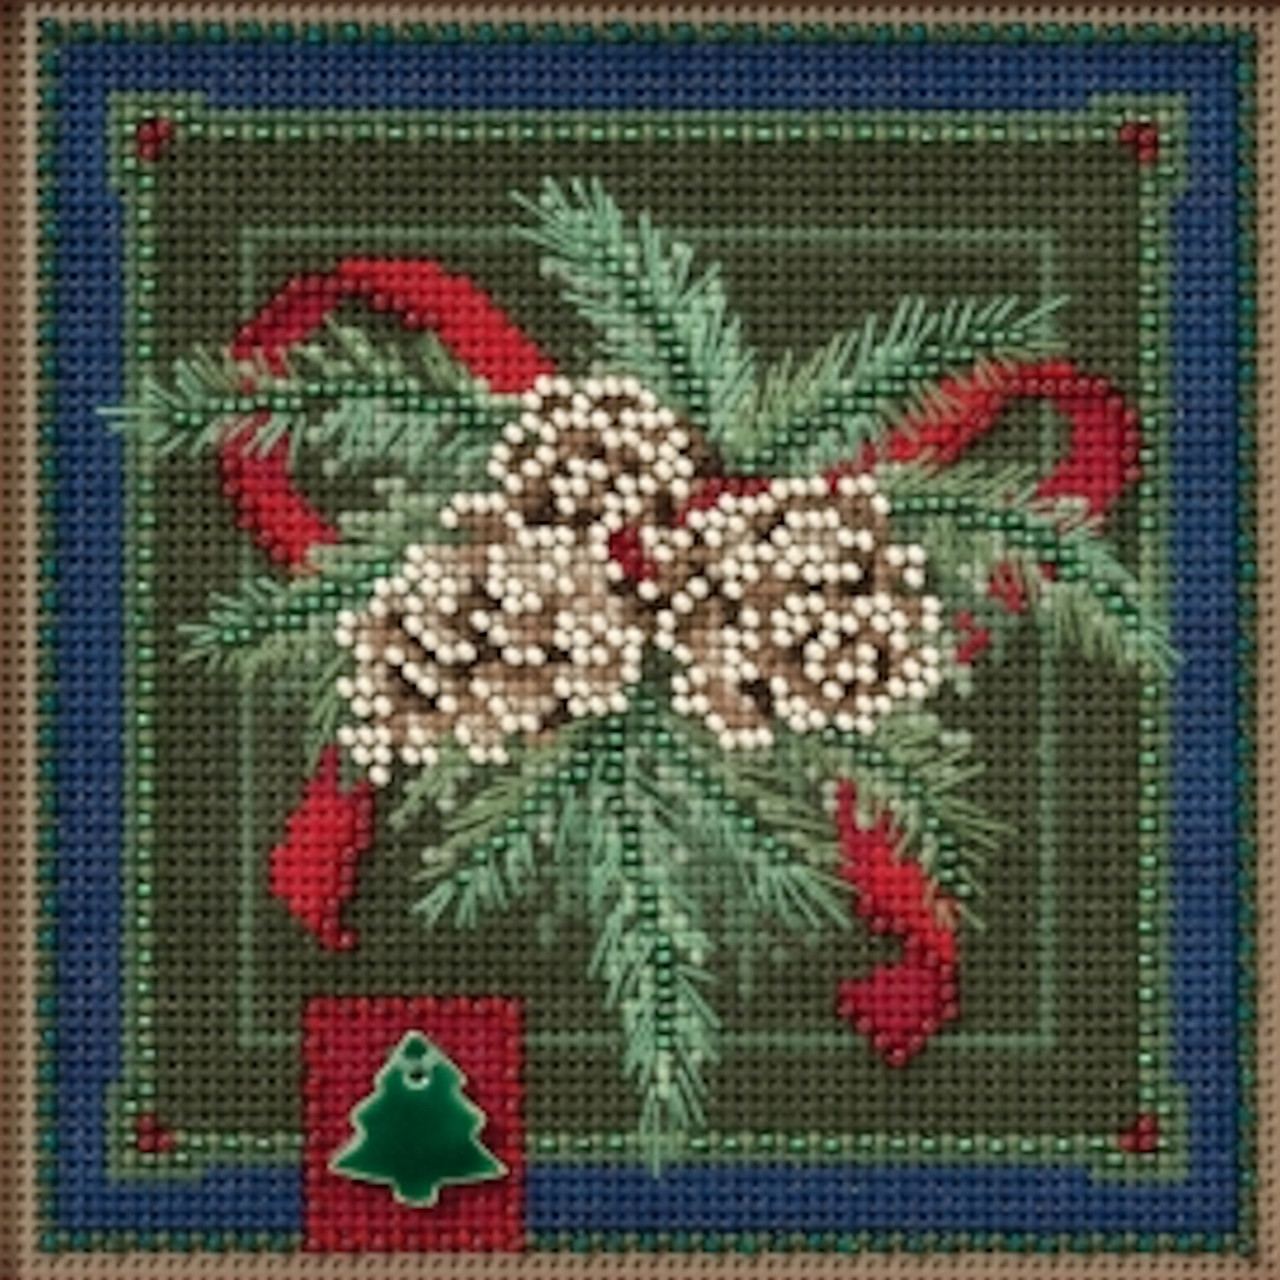 2016 Mill Hill Buttons & Beads Winter Series - Festive Pine